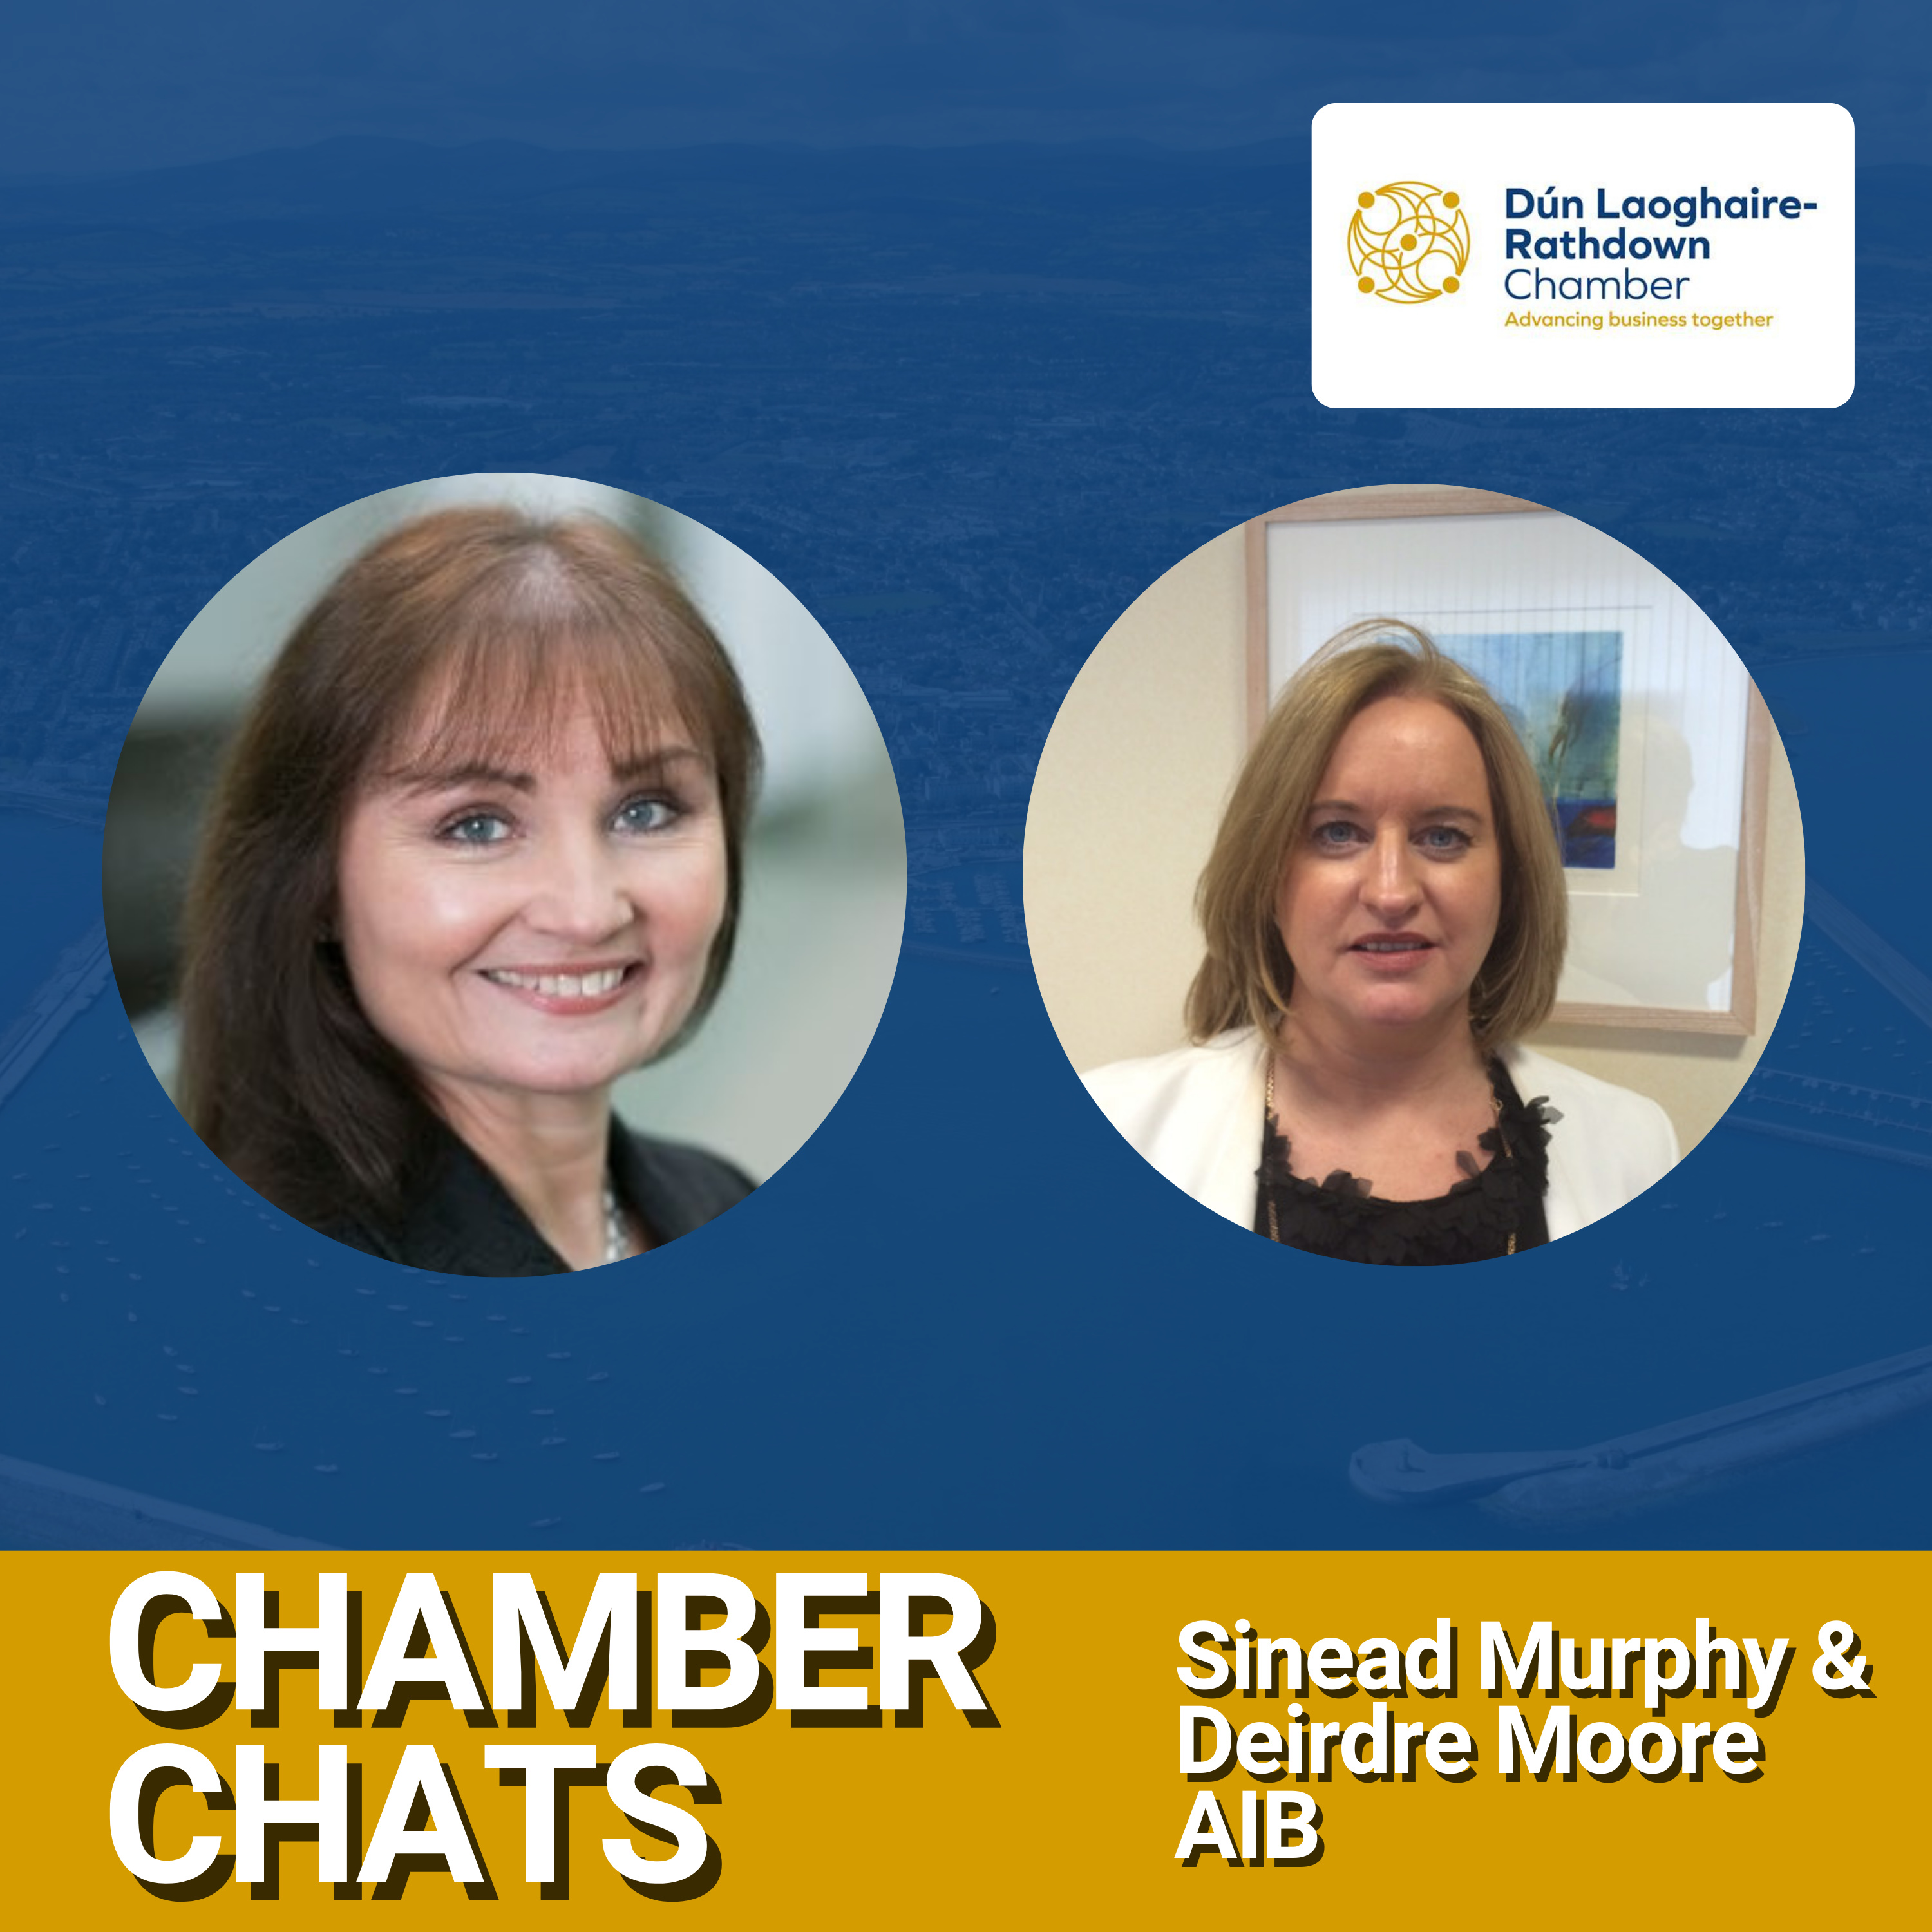 Sinead Murphy and Deirdre Moore- AIB Dun Laoghaire